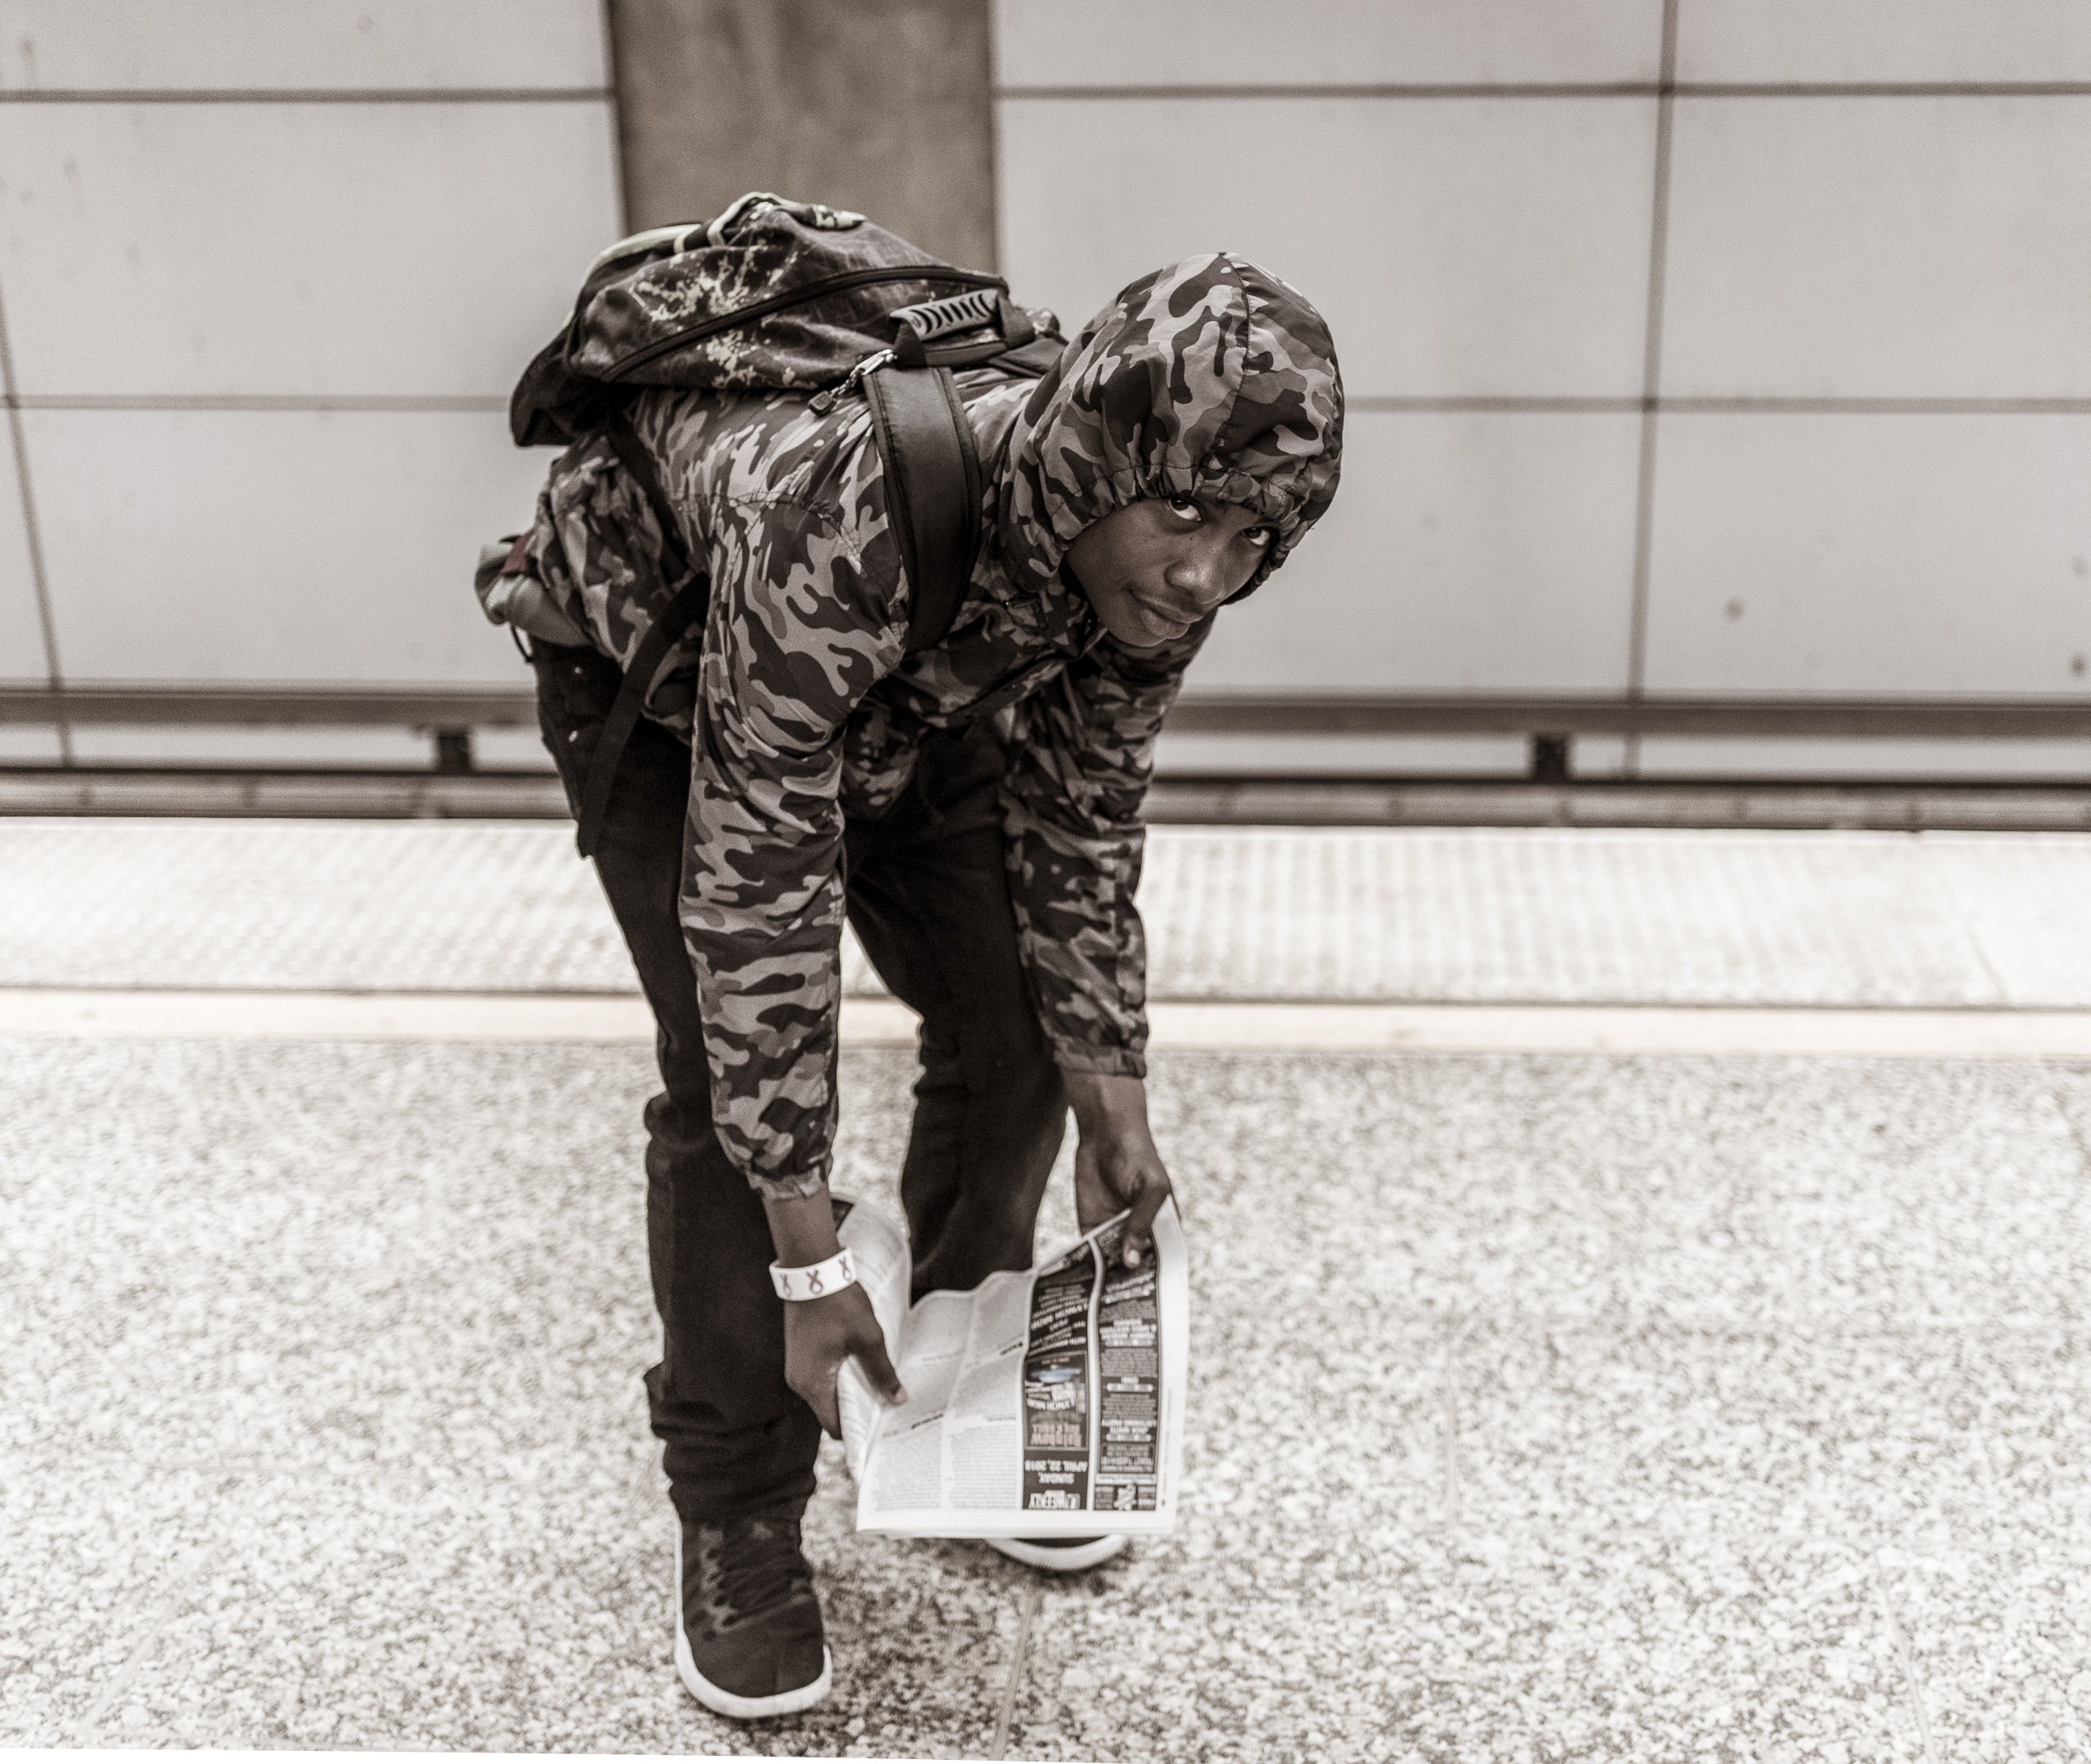 a young man bends over in a portrait pose while he waits for the Red Line train at the Hollywood & Highland platform